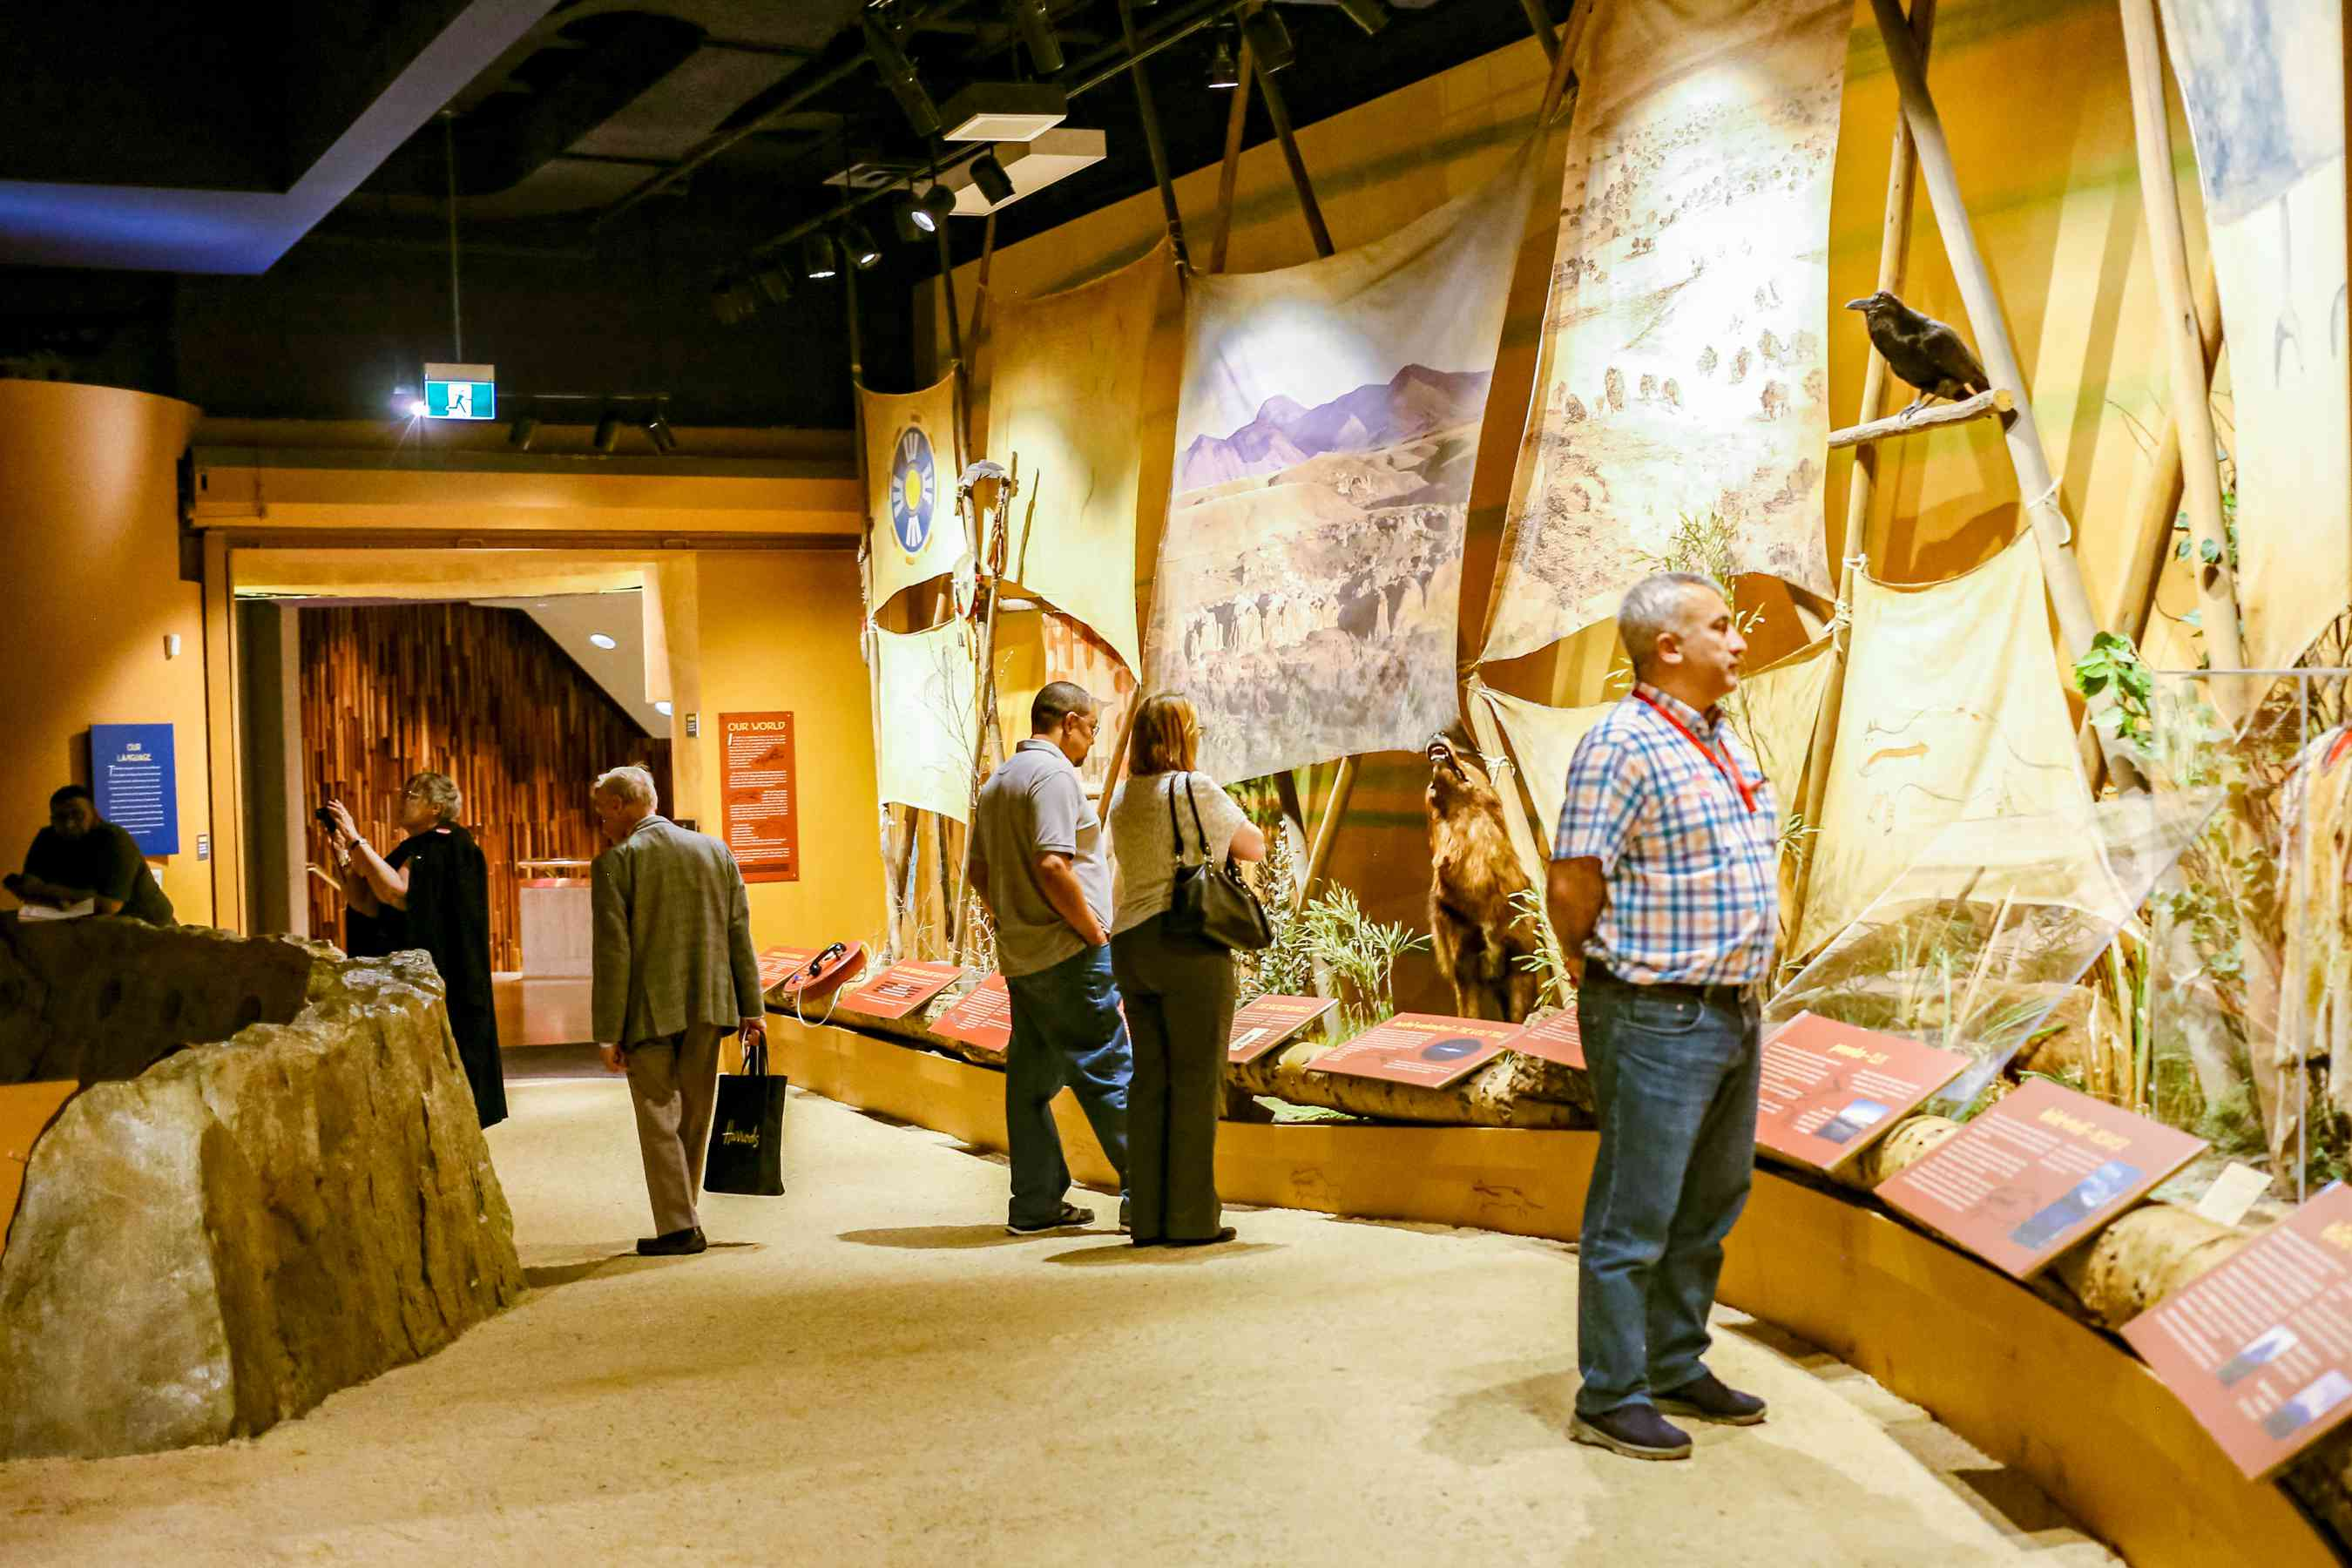 People observing an exhibit in the Glenbow Museum